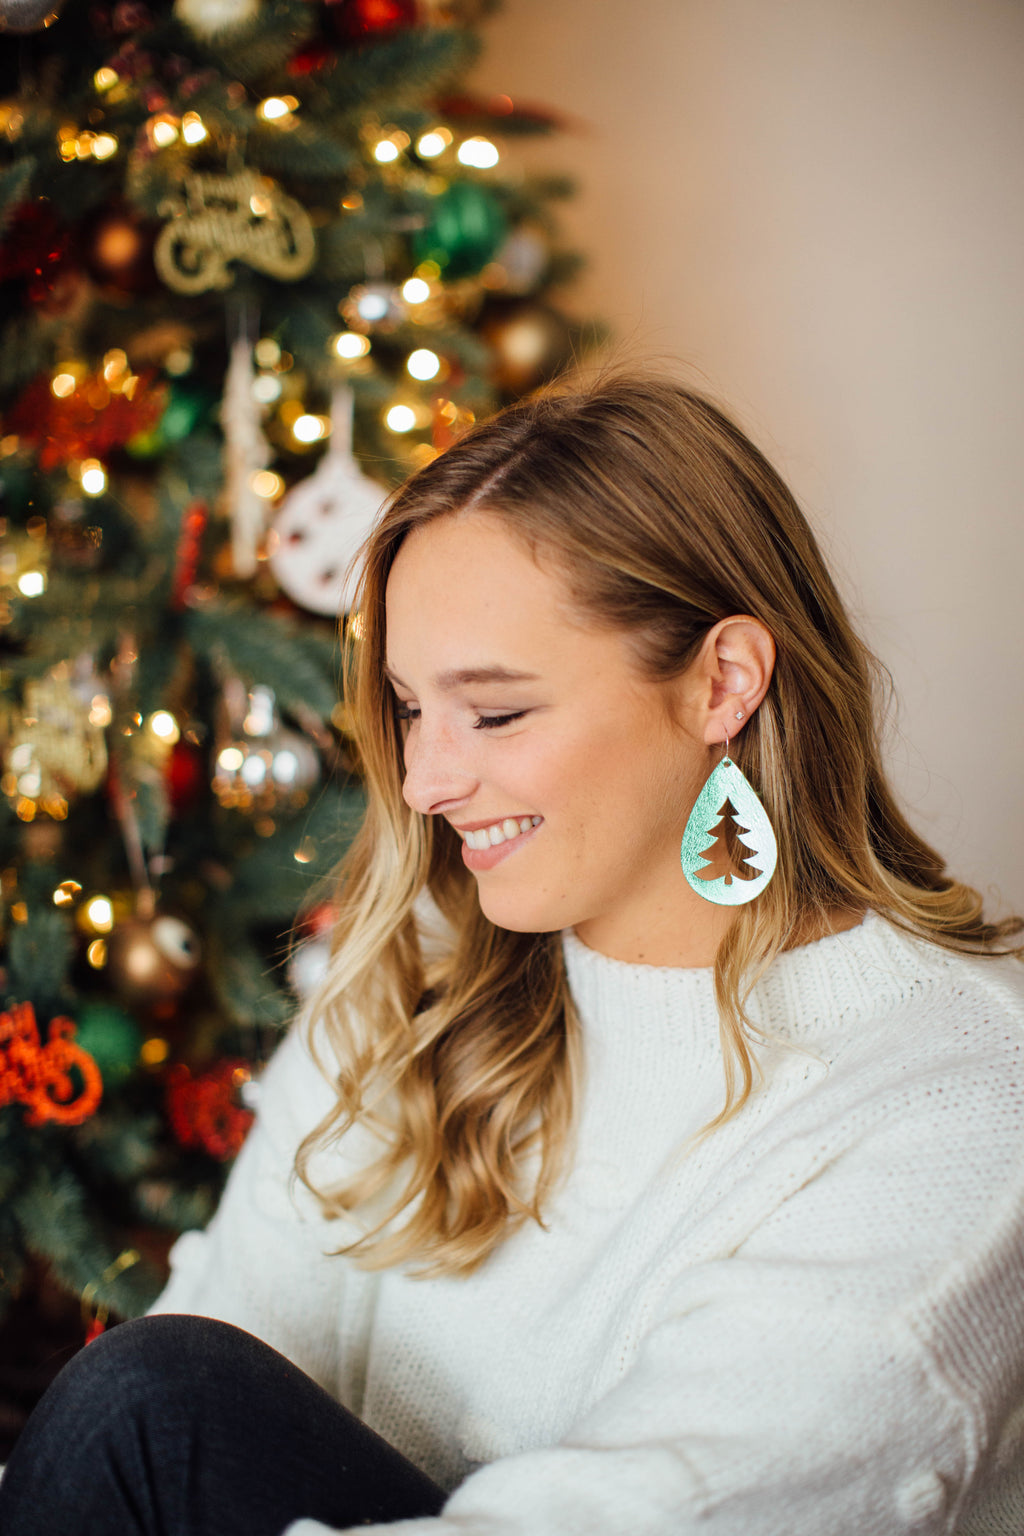 Green Christmas Tree Cutout Earrings